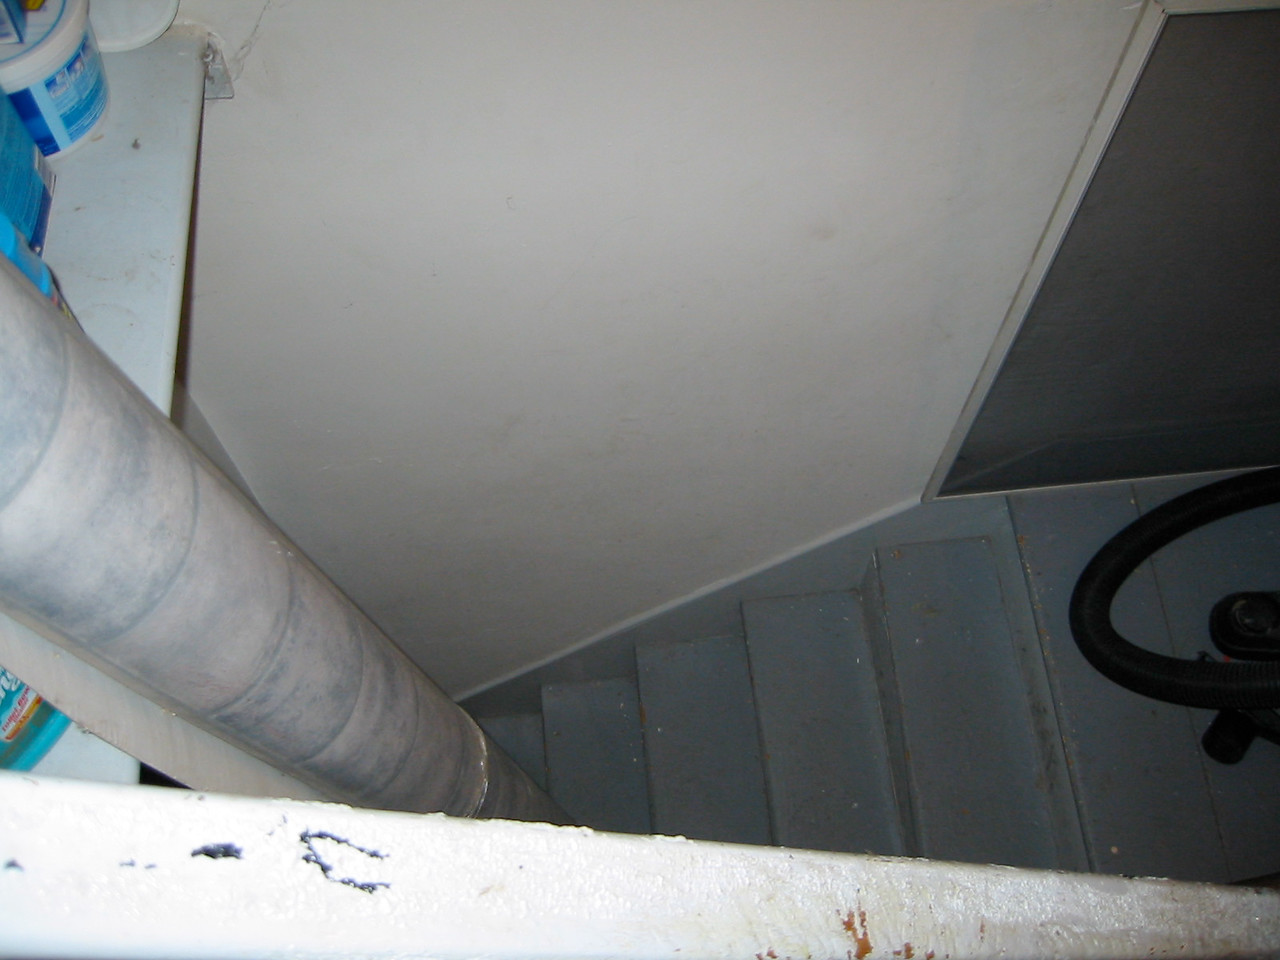 Hedgie Room Renovations 2003    Filename reference: 20030725-000011-HAH-Hedgie_Room_Renovations-SM